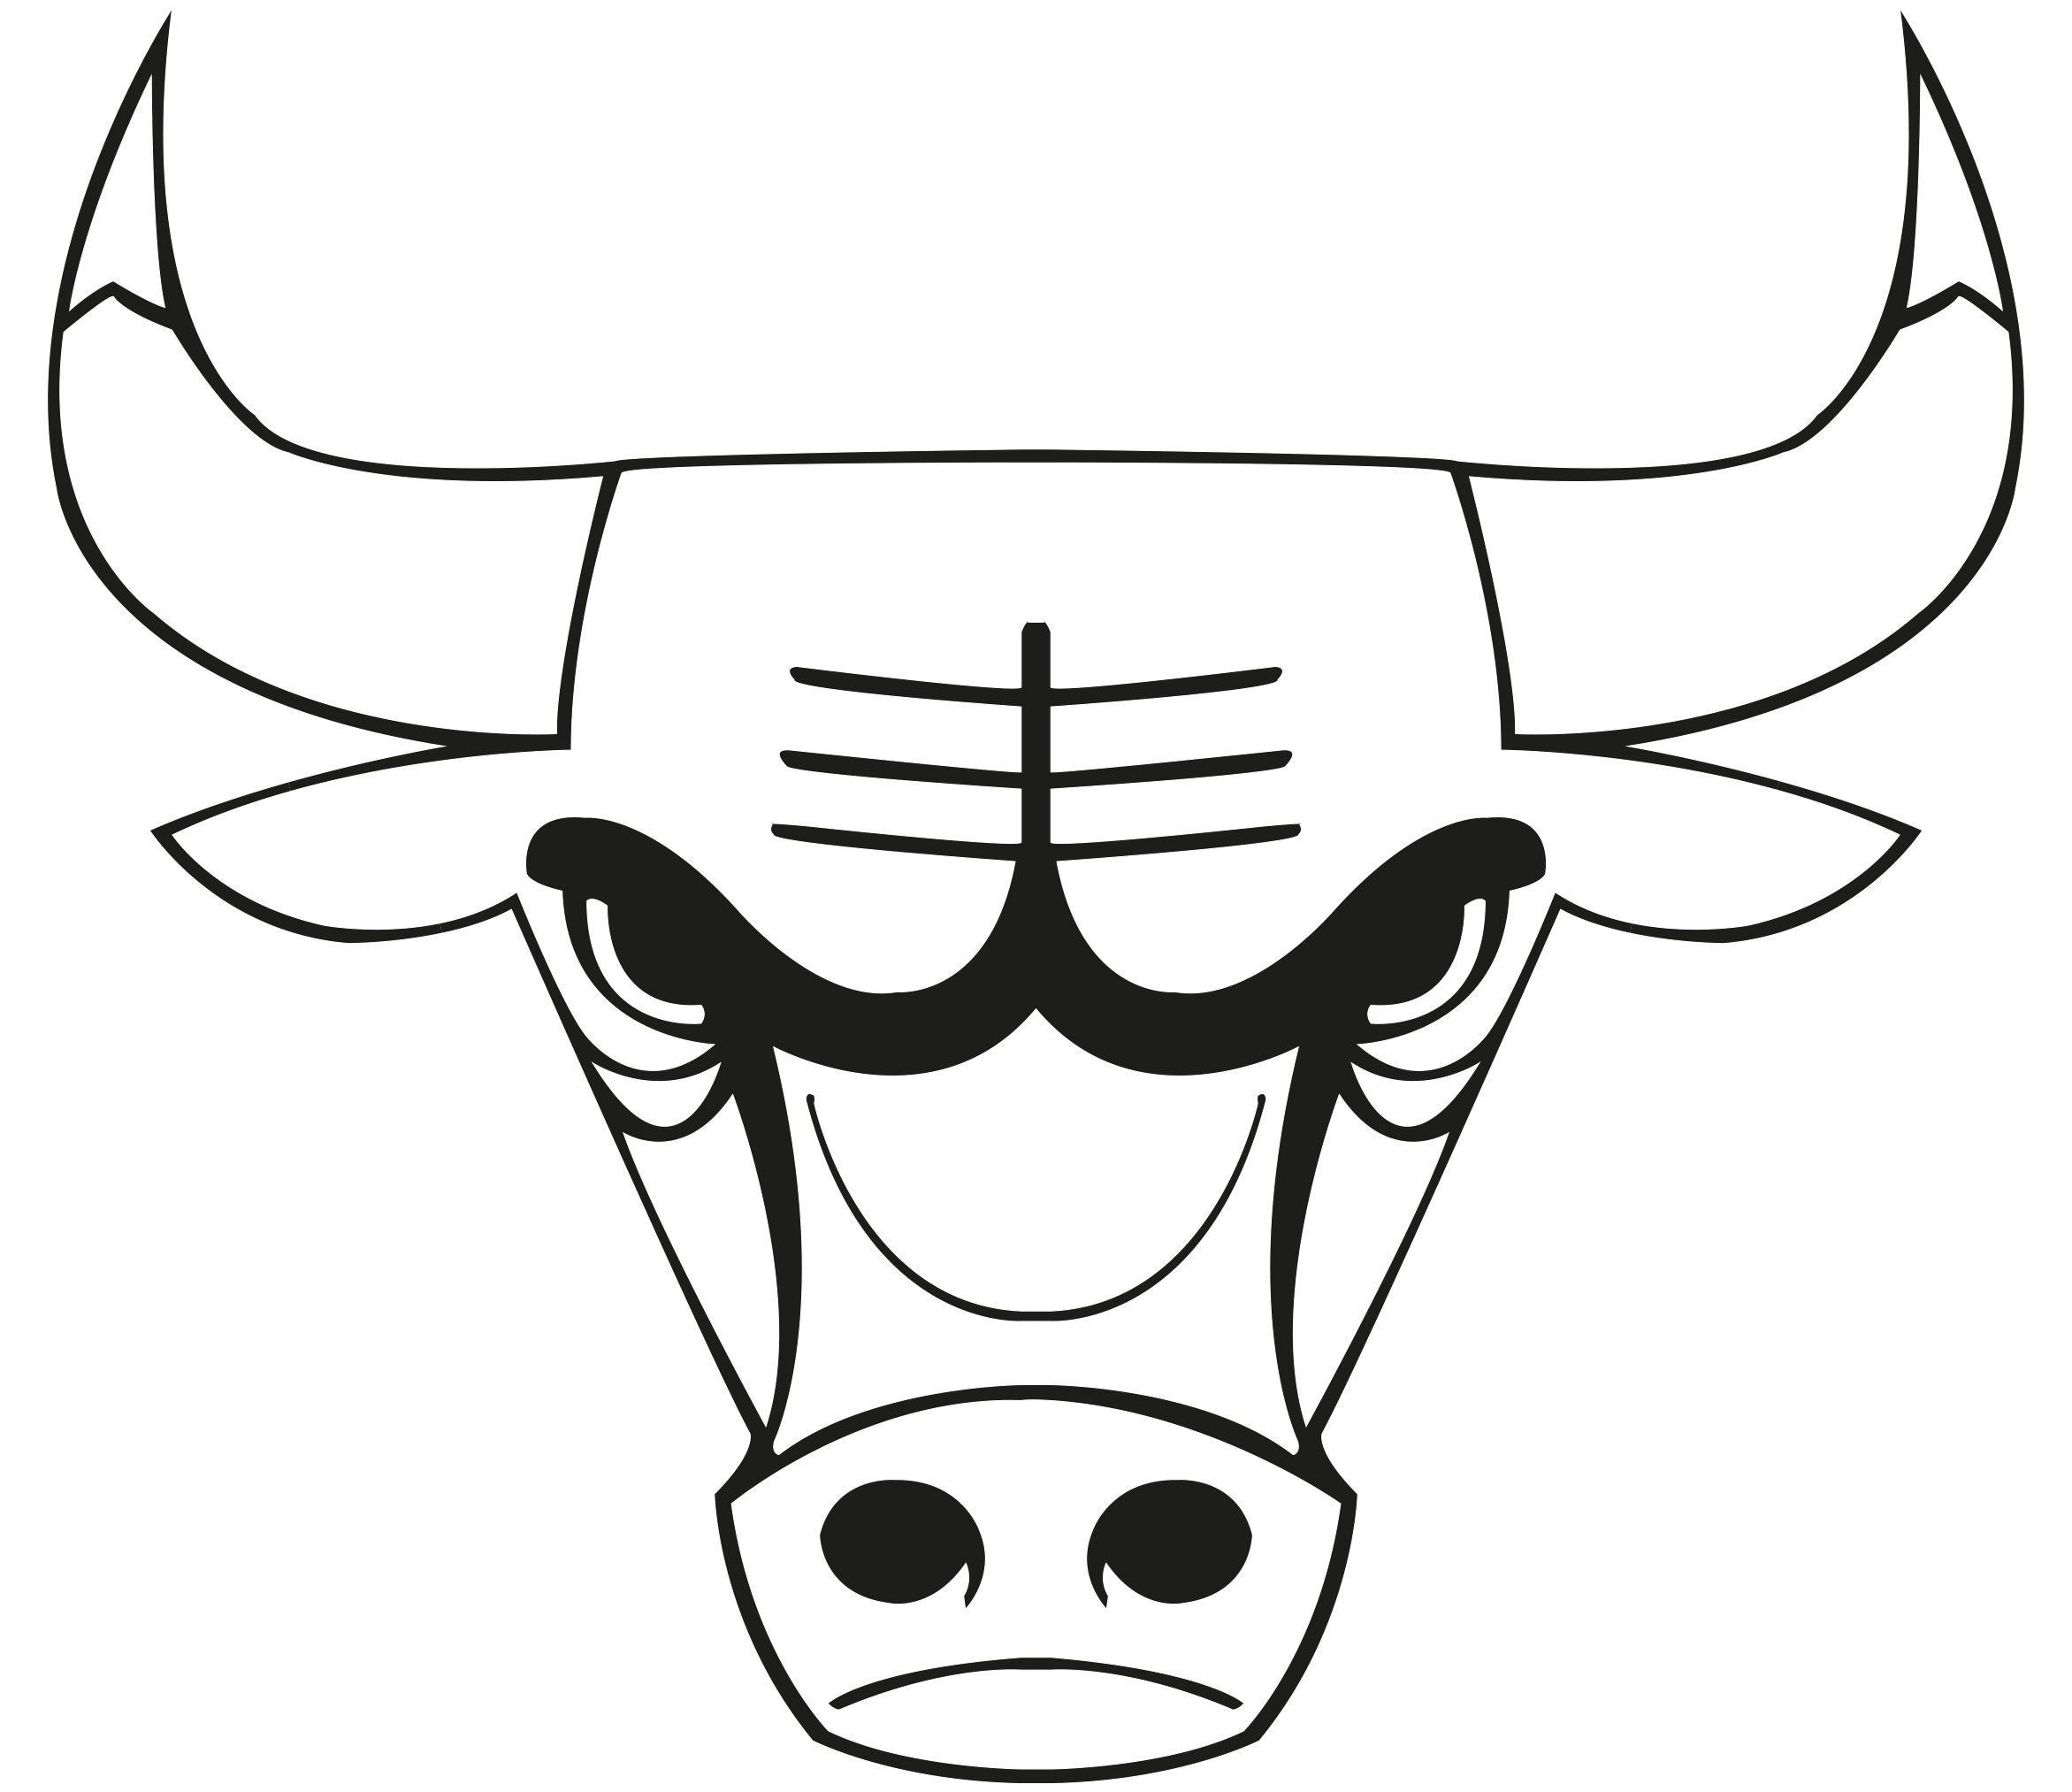 images of the chicago bulls logo.